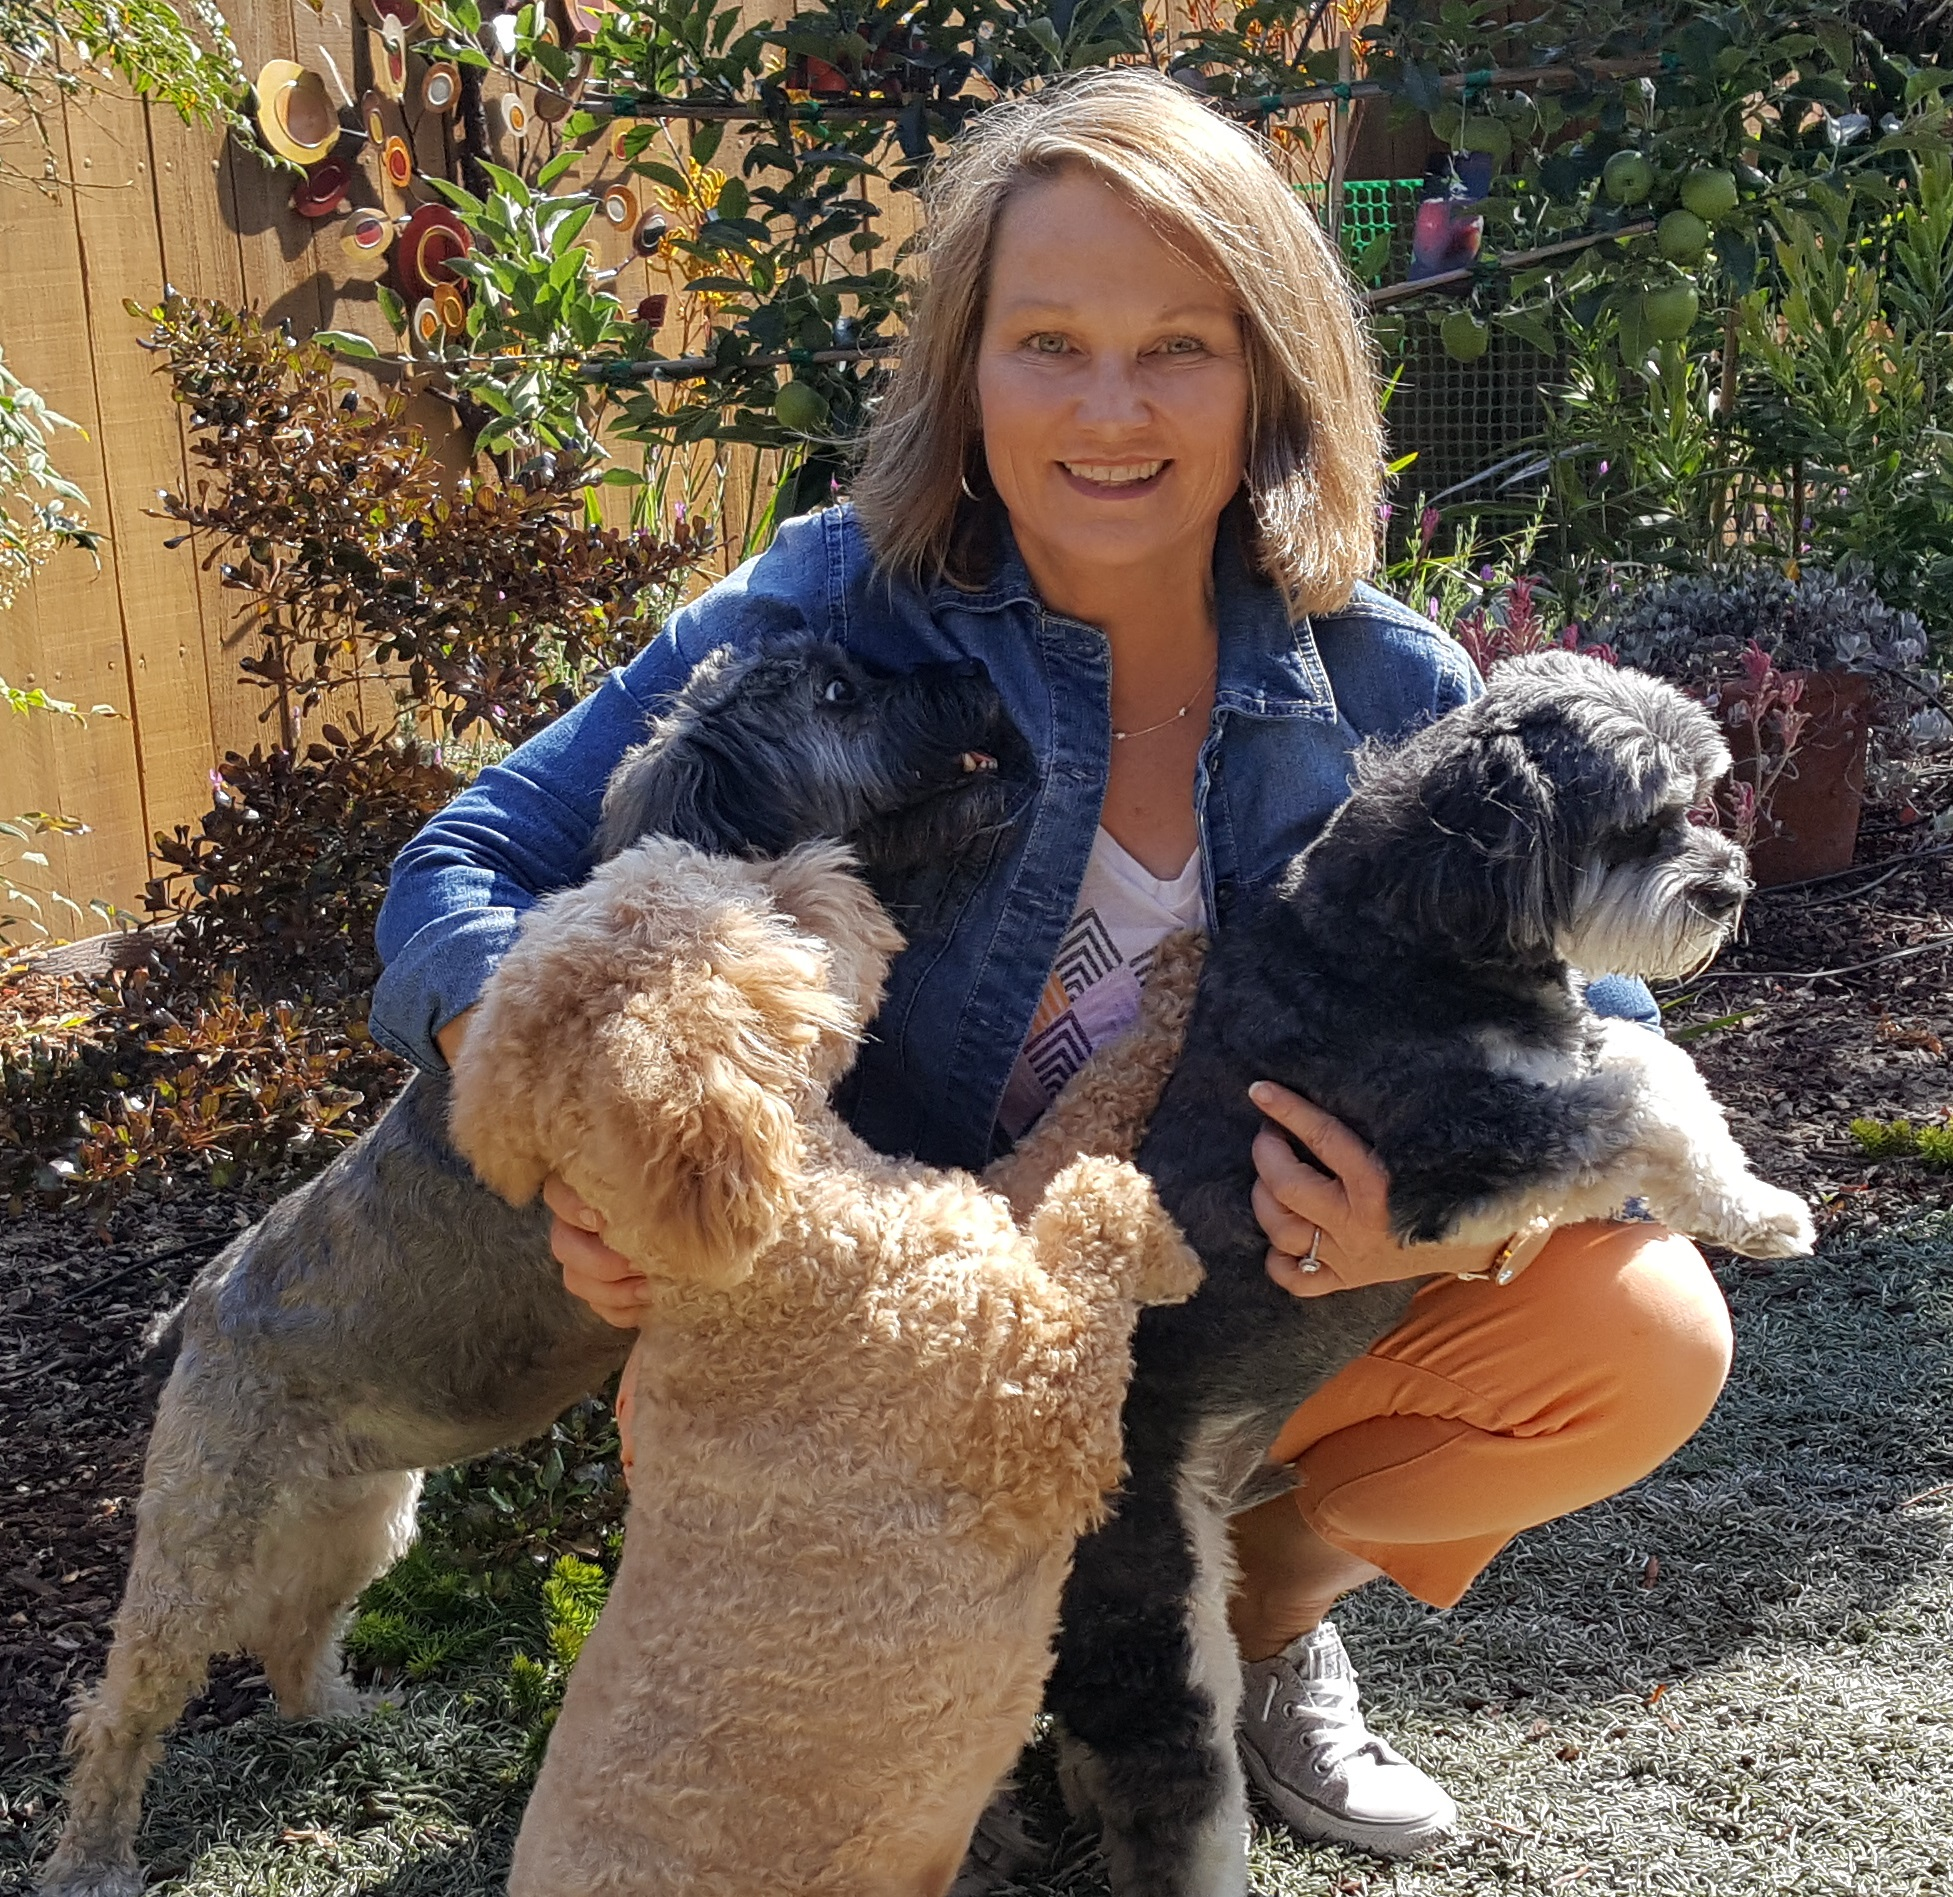 "Barb - Barb Pensky has always had a special connection with dogs since she was a child and has been working professionally with them for over 25 years. She has owned three Pet care businesses which focused on caring for dogs while their owners were away.She also continues to volunteer at the local shelter, teaching dogs good manners so they are more adoptable.Barb is a CPDT-KA certified trainer, helping owners teach their pups good manners and redirecting bad habits. Barb only practices science based, positive reinforcement methods of training. This is a proven and effective technique to help your dog make the right choice, it strengthens your bond and it's FUN!Barb promises to be your ""Chief Dog Advocate"", ensuring your pup has a loving and positive experience at our ""Inn""."